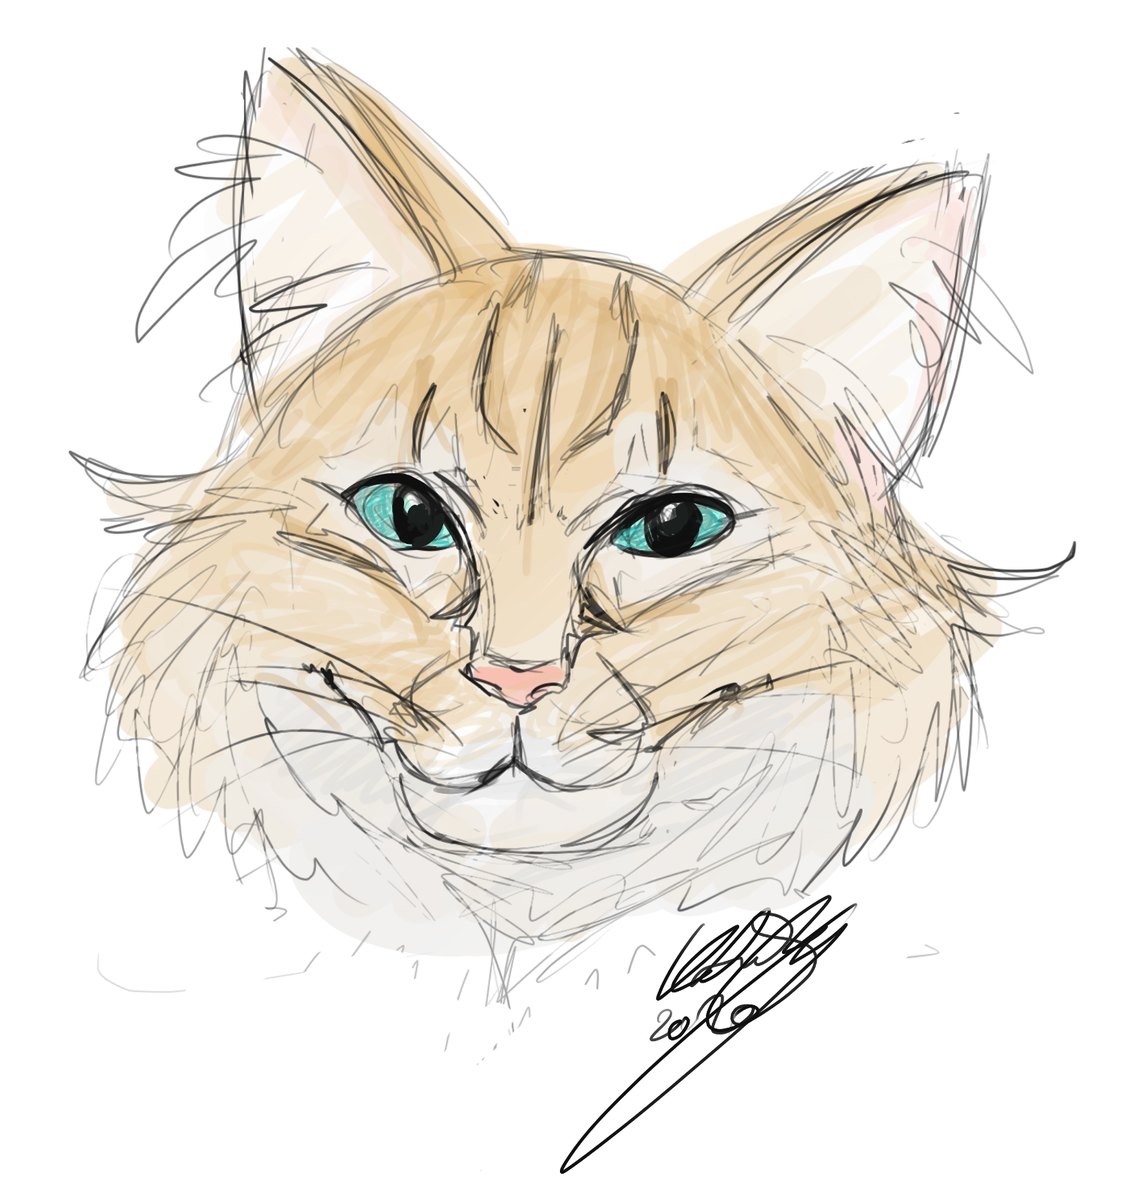 I have the purrfect drawing to add to this thread. This was a doodle of my very own furbaby that I did when I started using my drawing tablet this year! #CatsOfTwitterpic.twitter.com/2s0TzgpP0Q